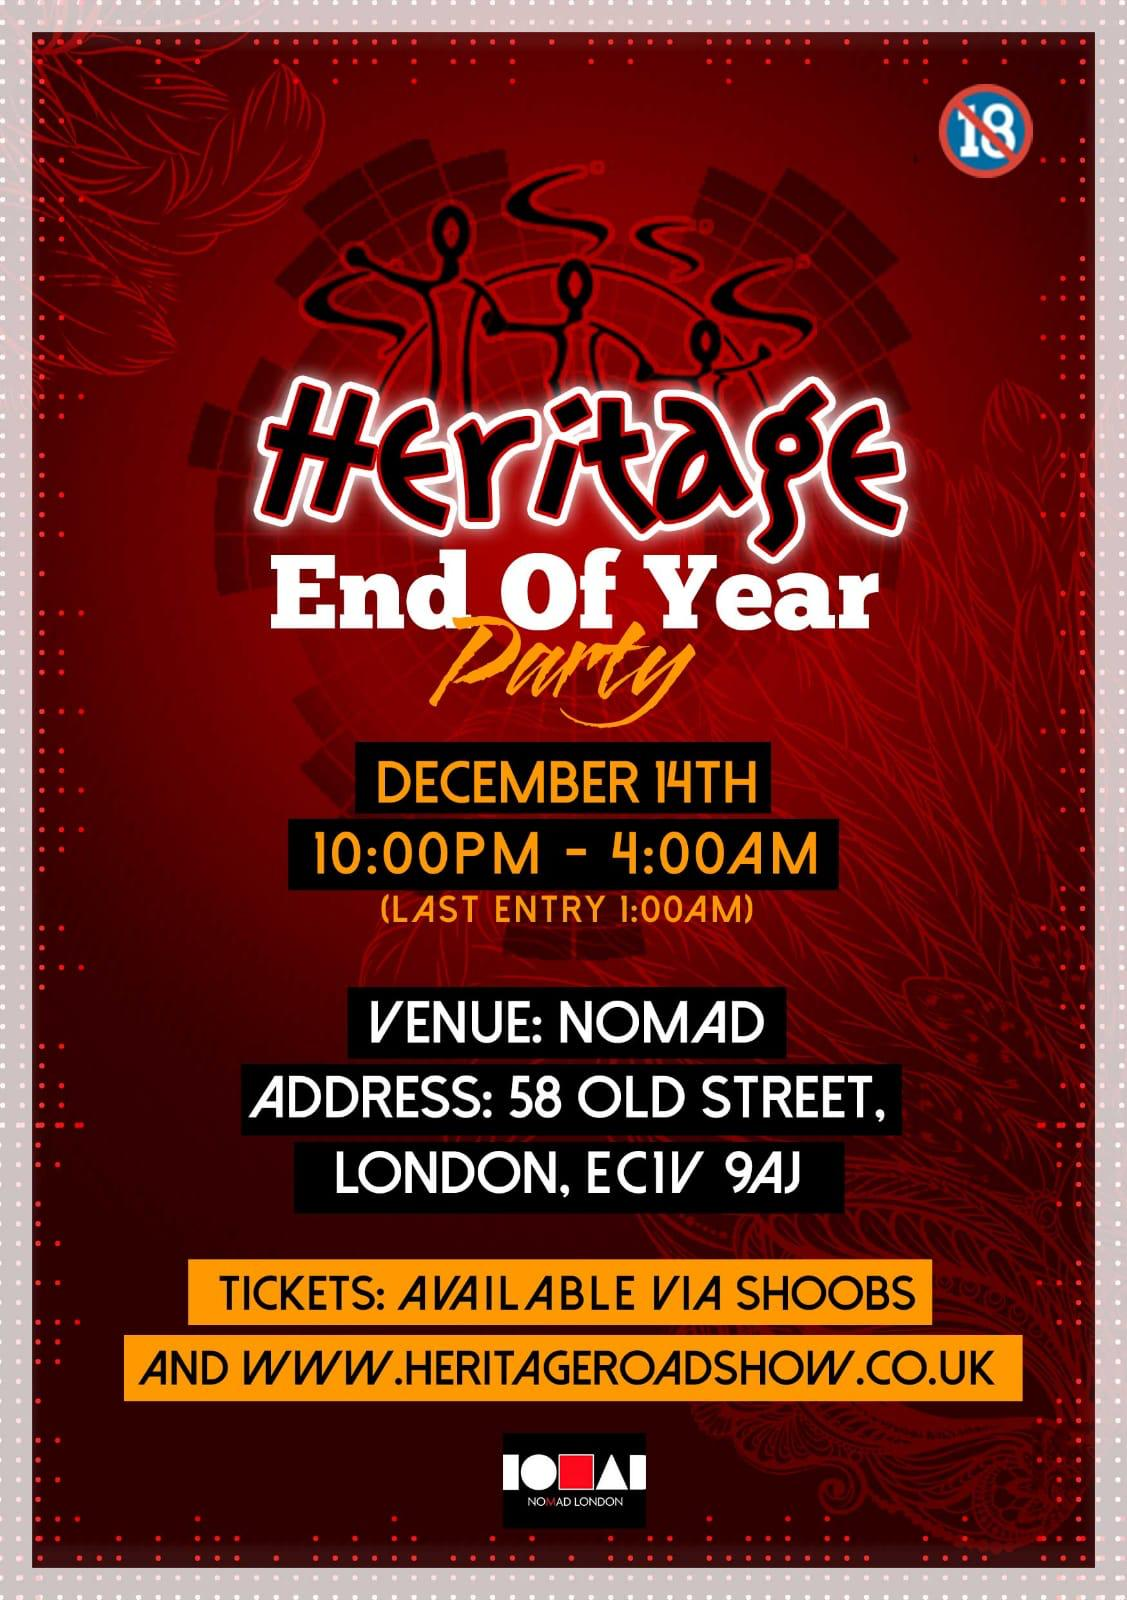 Heritage End of Year Party